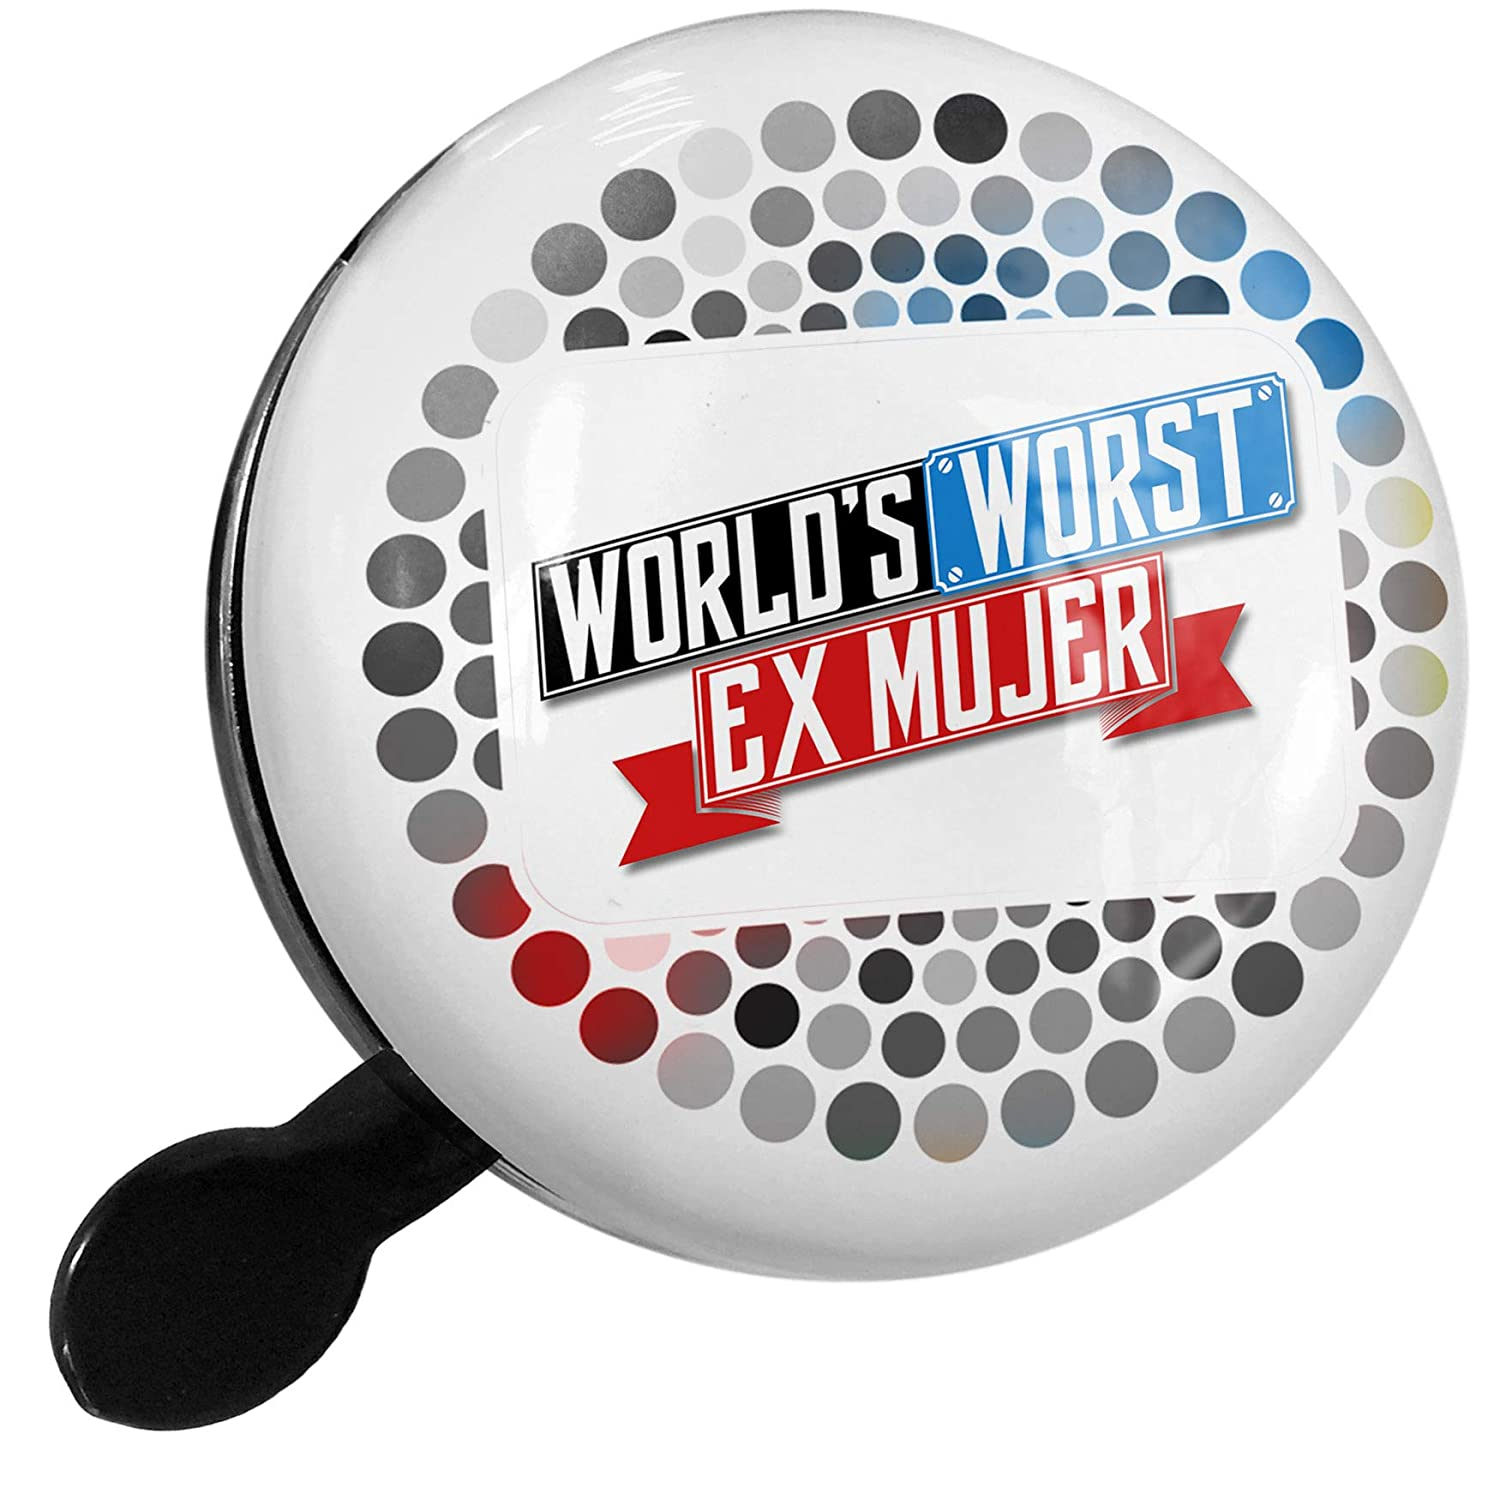 Amazon.com : NEONBLOND Bike Bell Funny Worlds Worst Ex Mujer ...